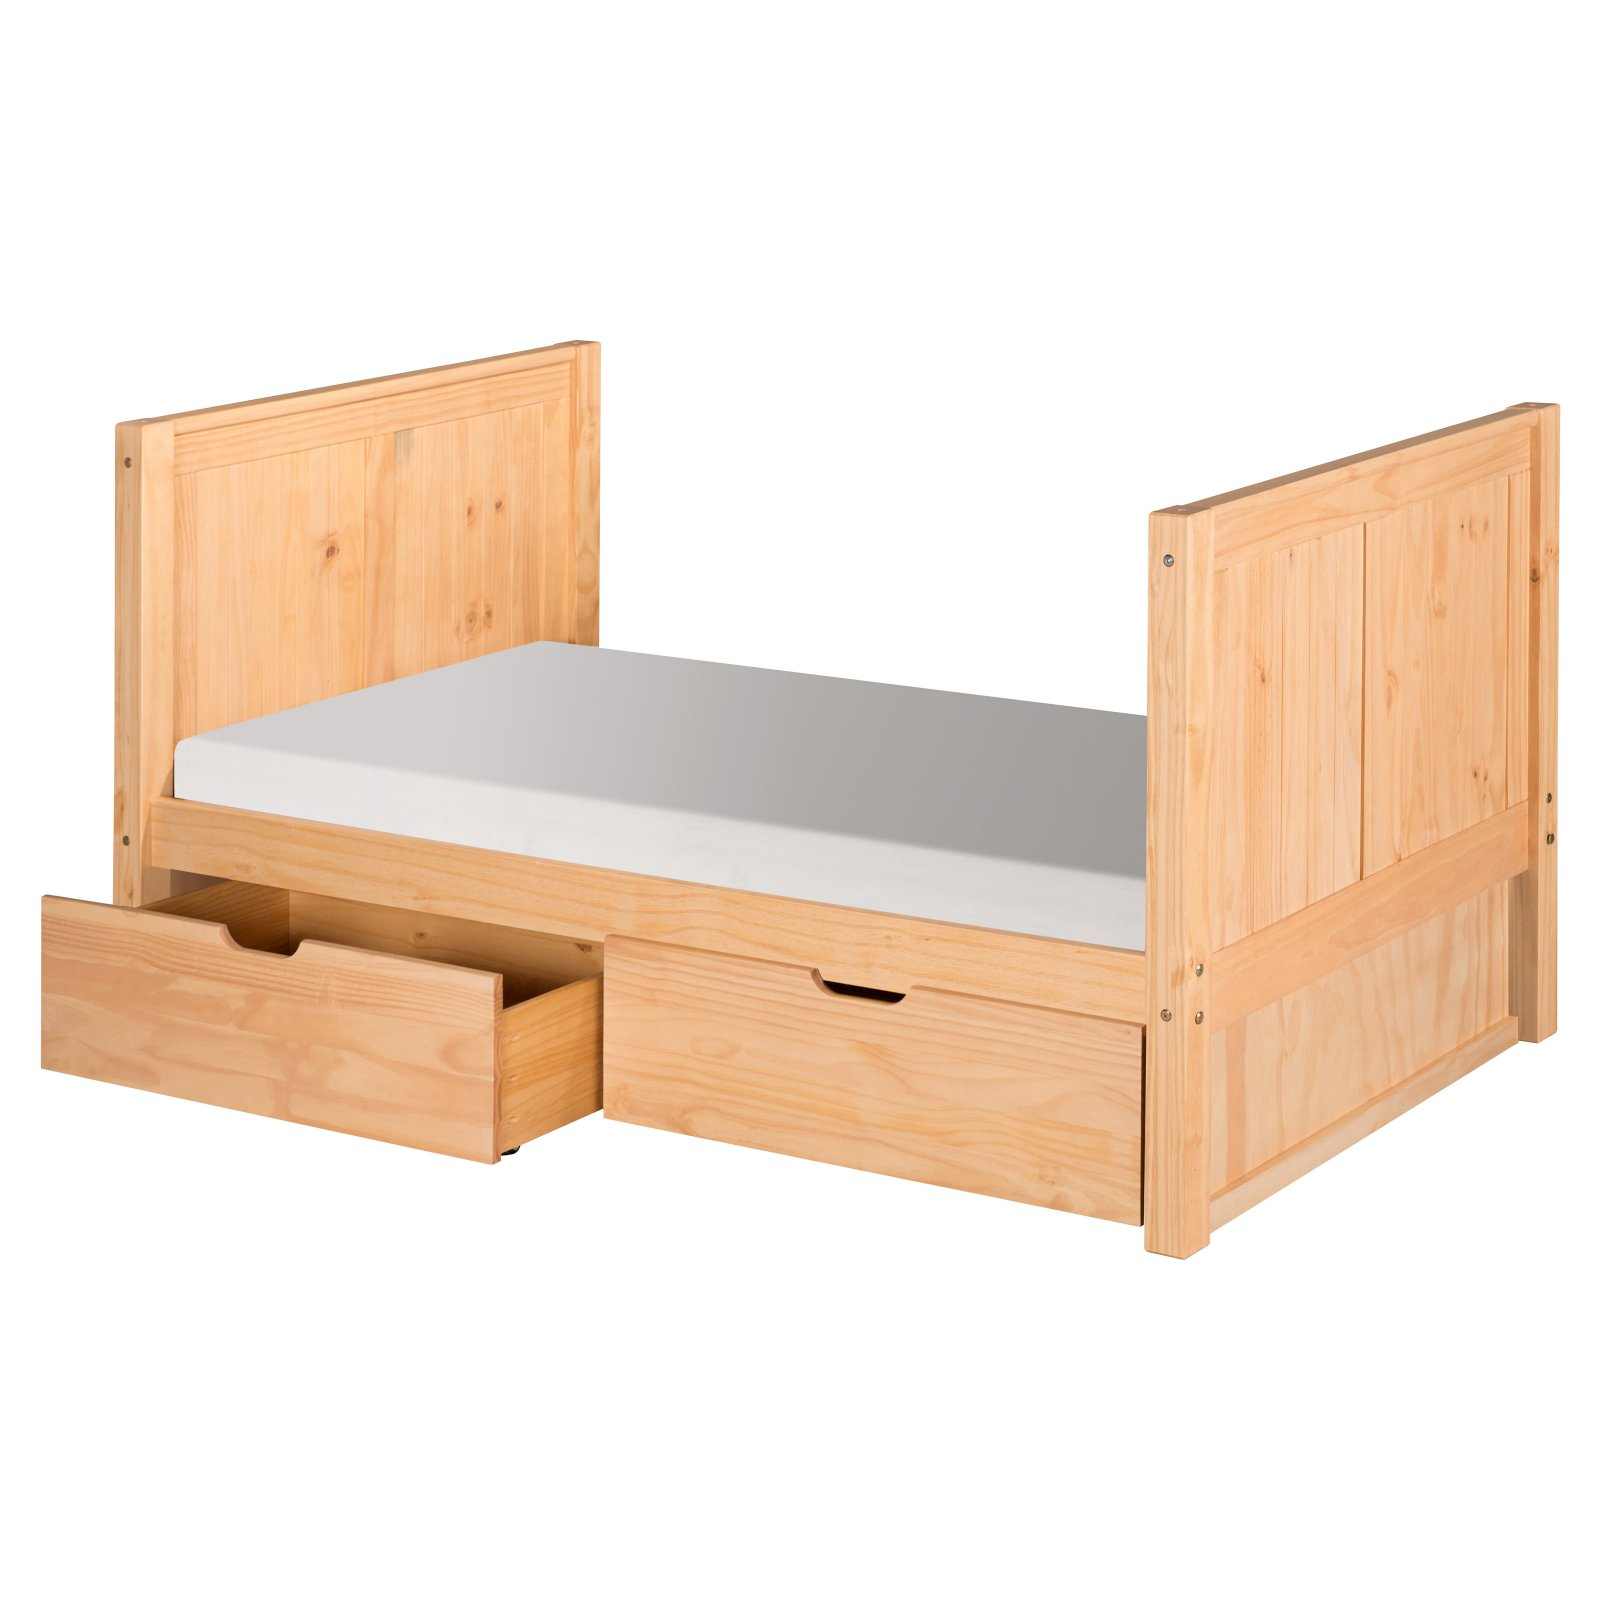 Camaflexi Twin Size Tall Platform Bed with Drawers - Panel Headboard - Natural Finish